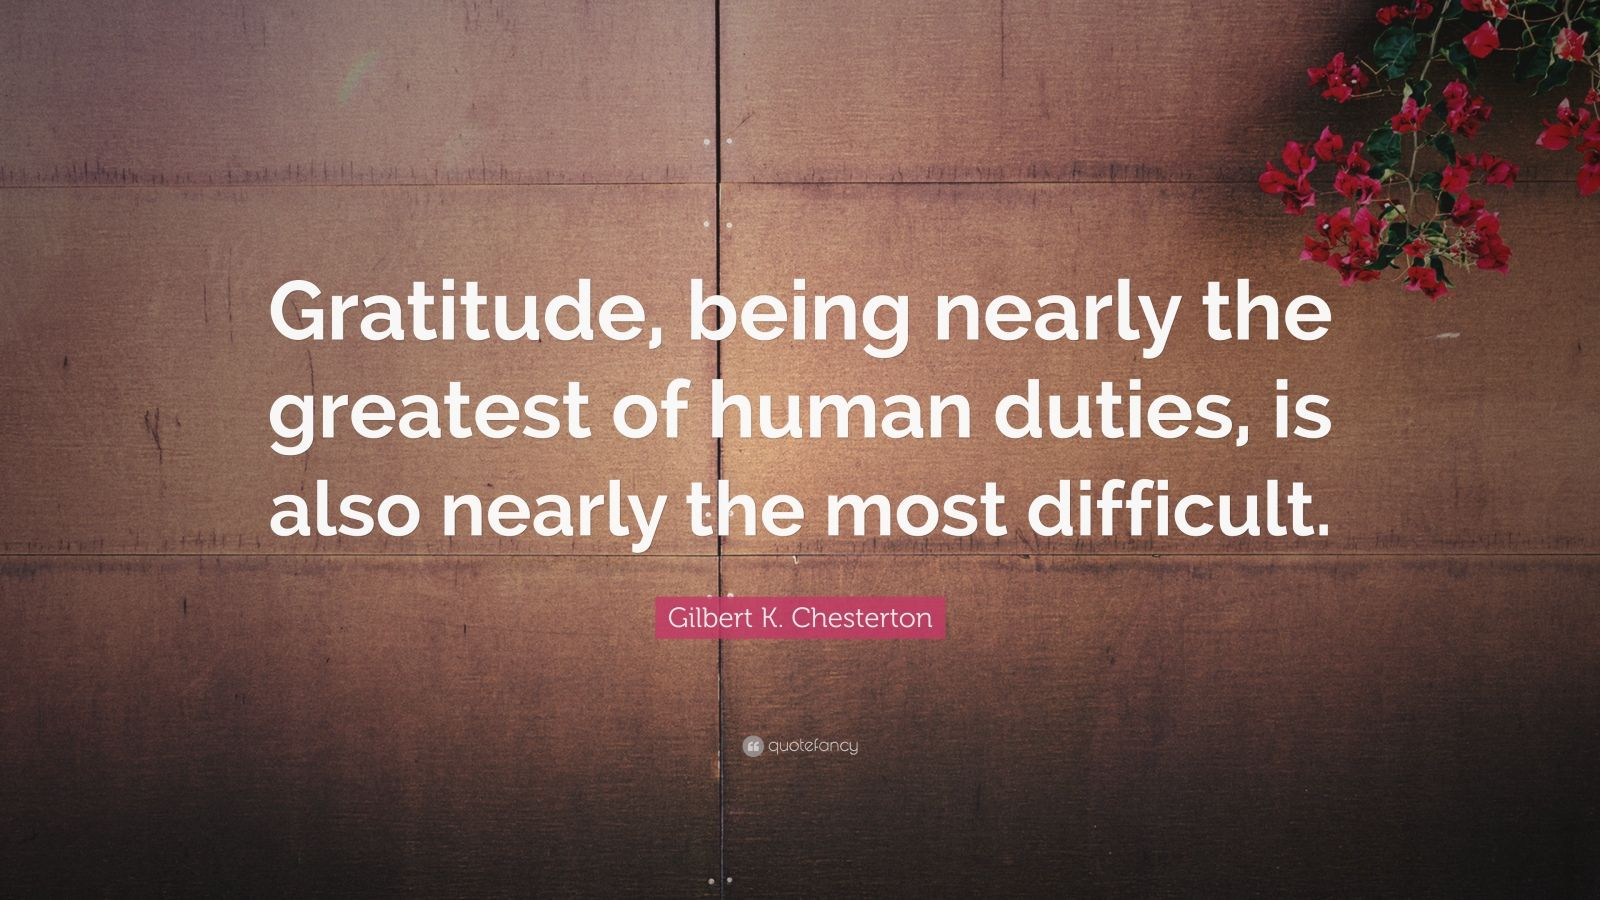 """Gilbert K. Chesterton Quote: """"Gratitude, being nearly the greatest of human duties, is also nearly the most difficult."""""""